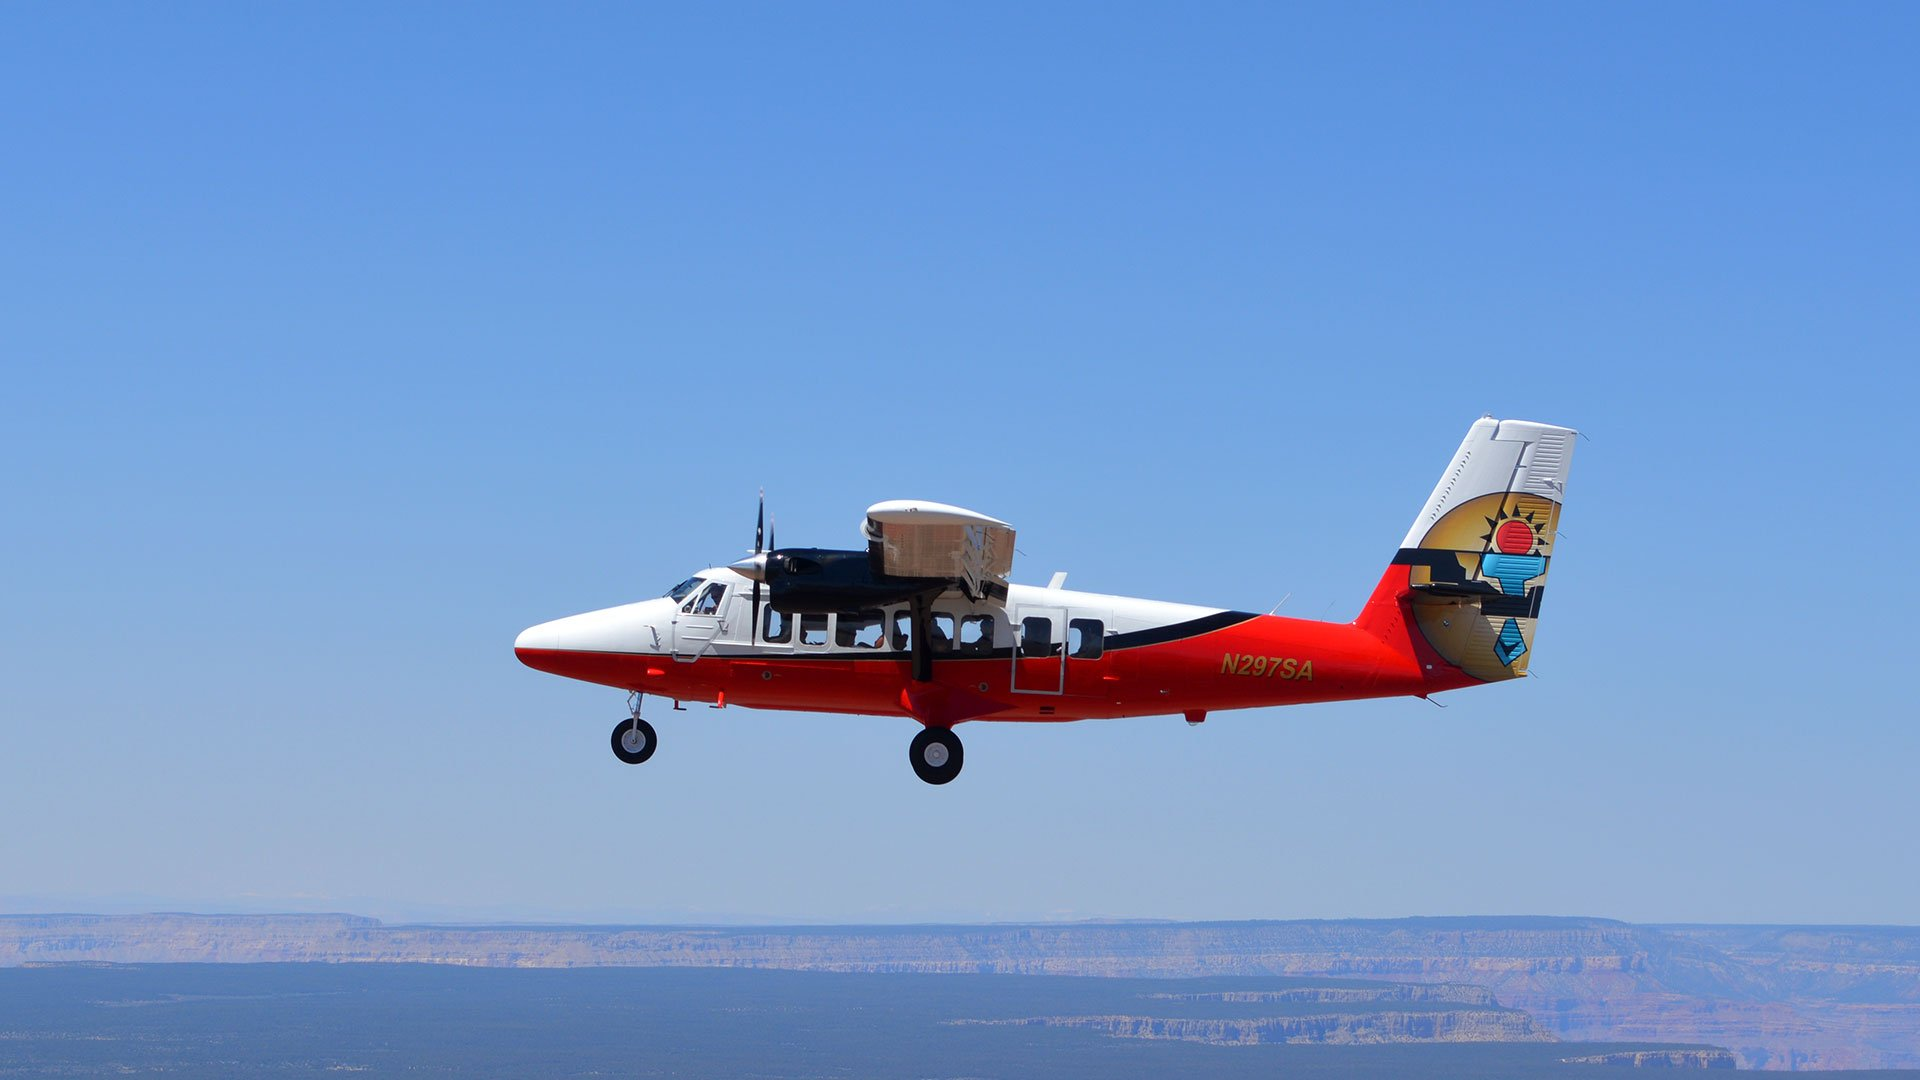 Twin Otter plane in flight